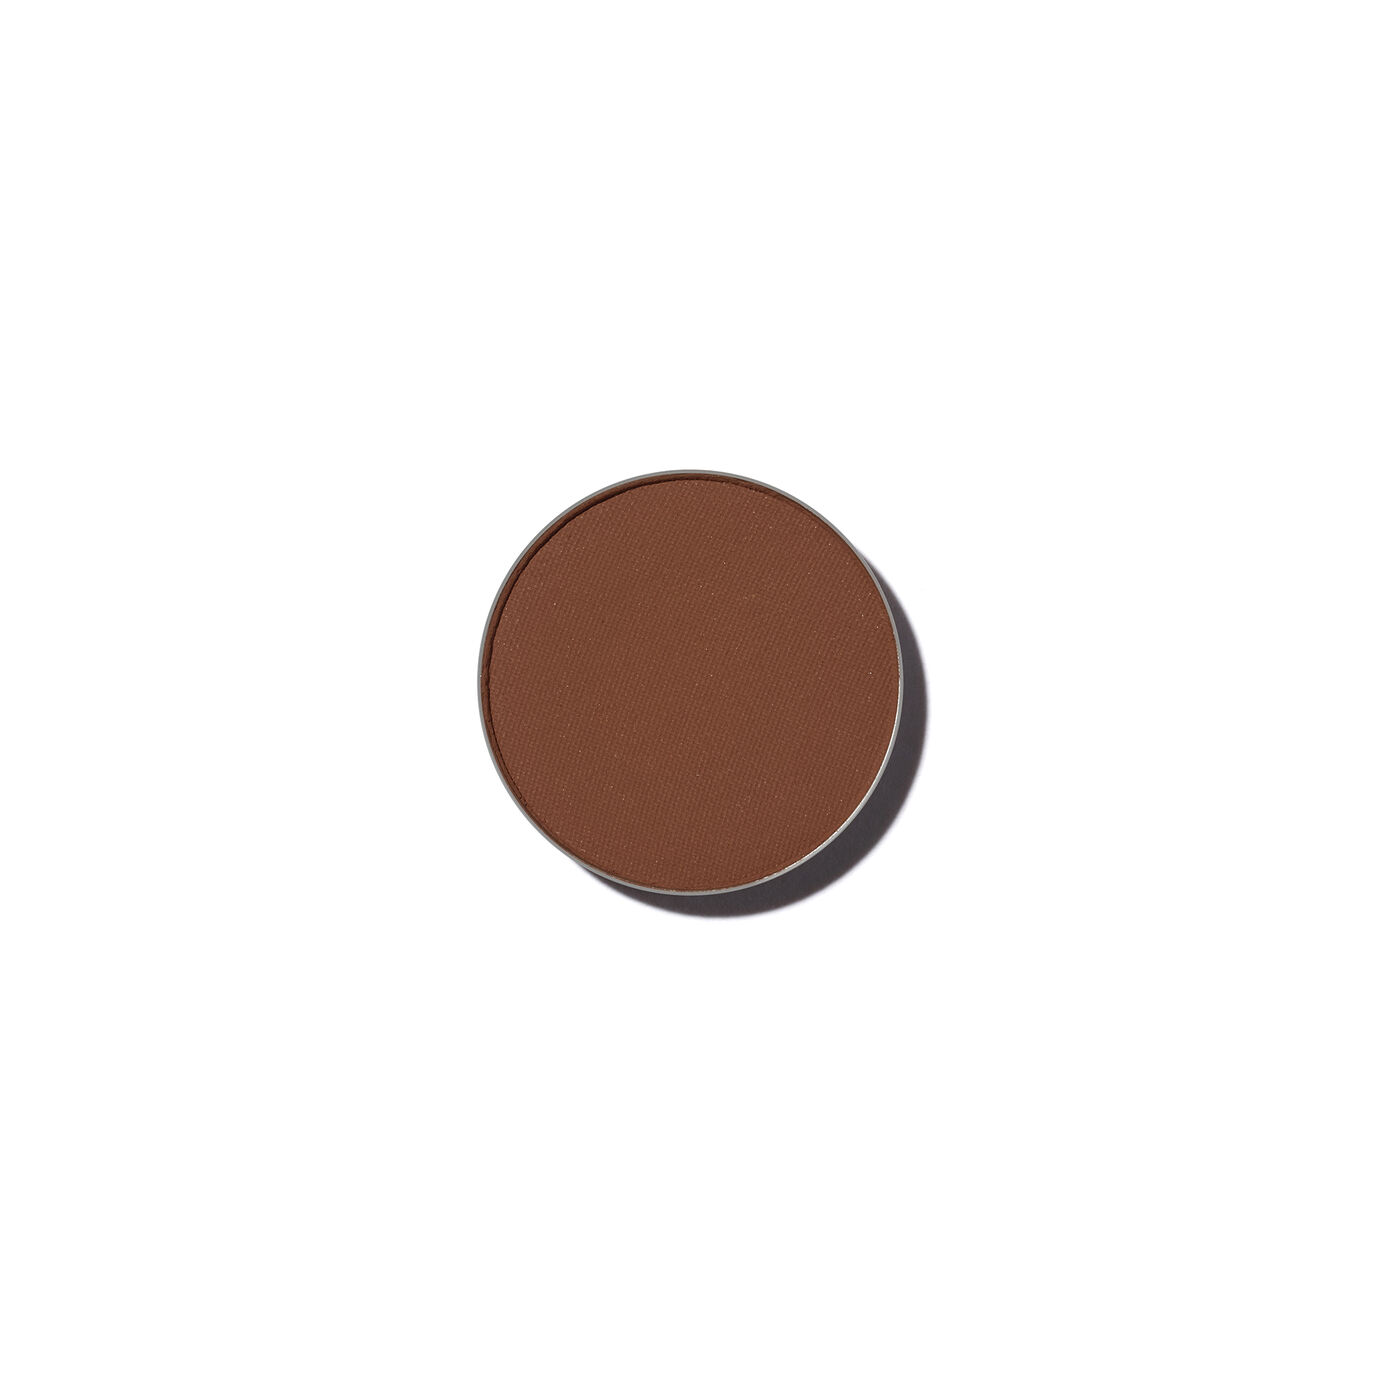 Eyeshadow Singles - Fudge